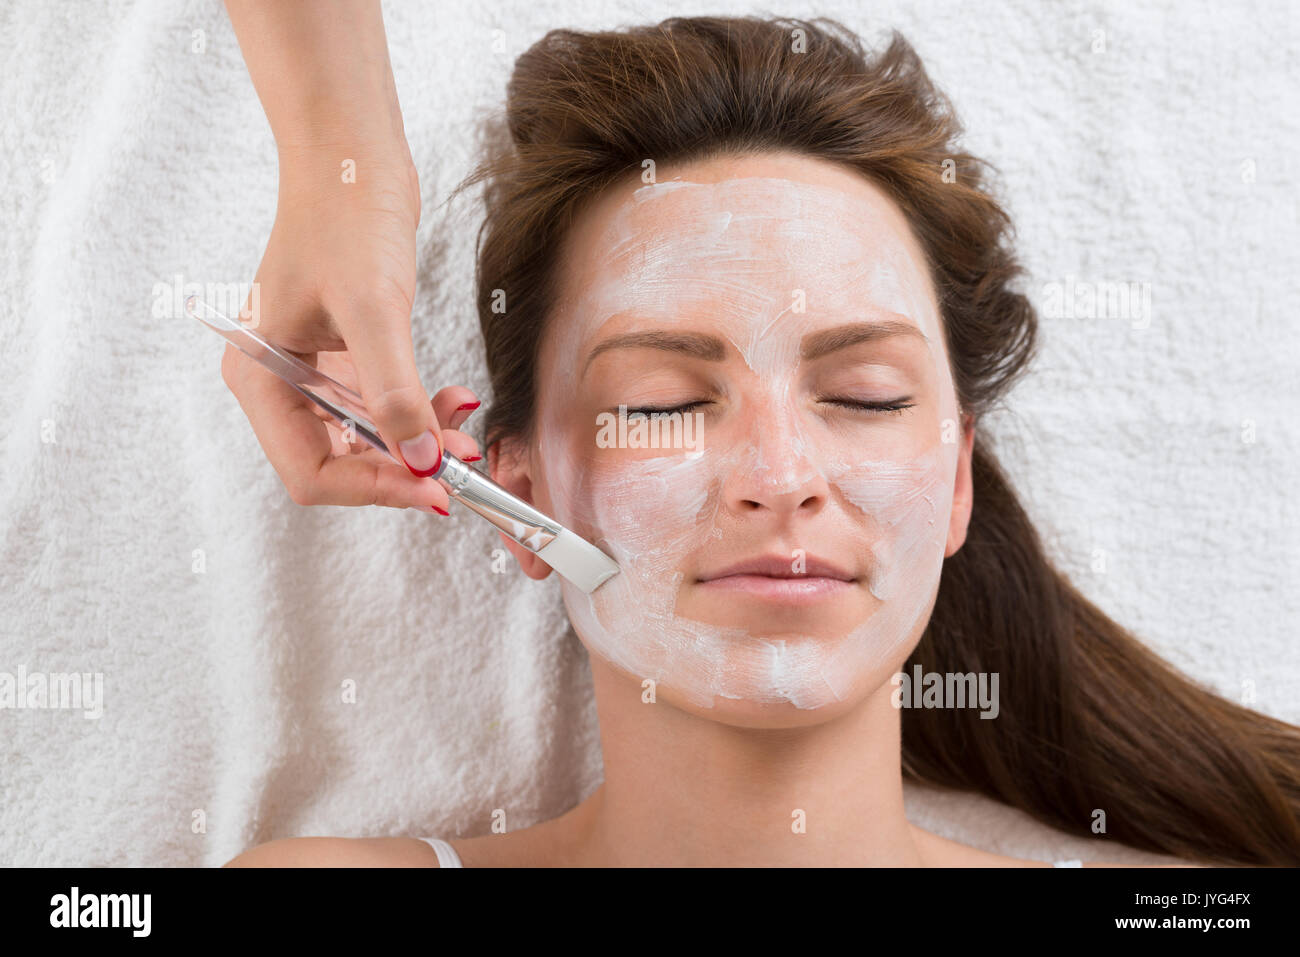 Therapist Hands With Brush Applying Face Mask To A Young Woman In A Spa - Stock Image